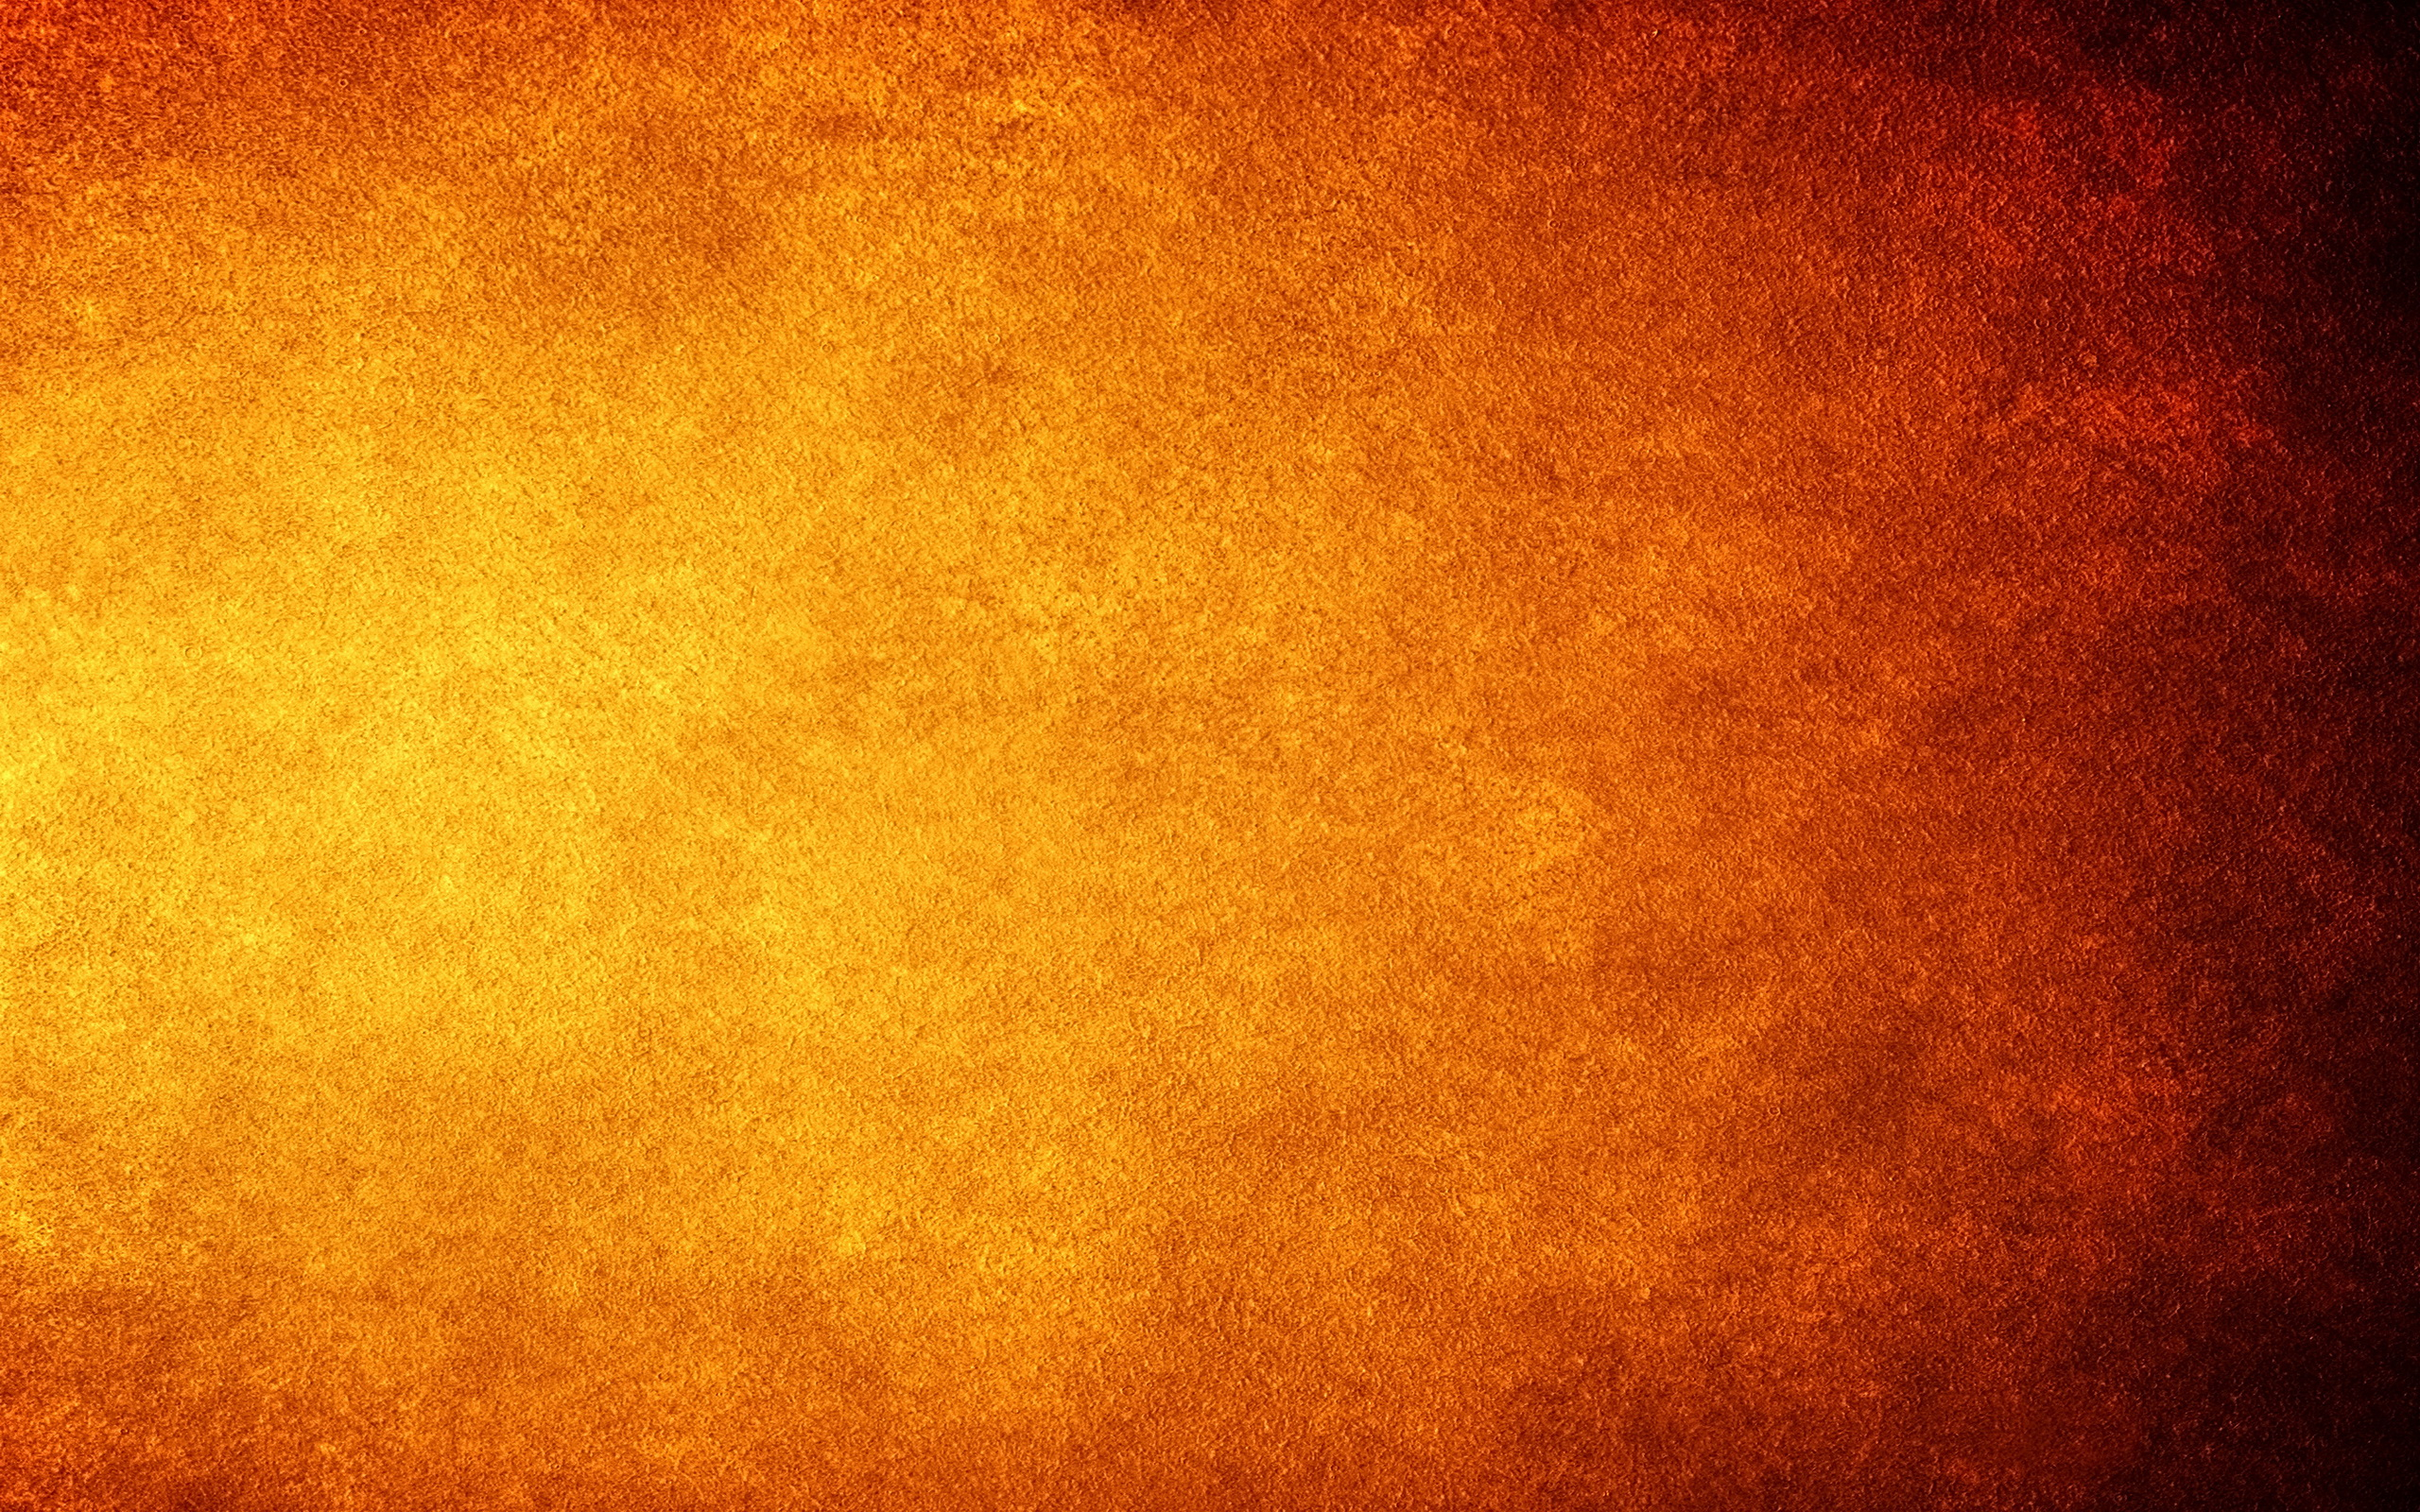 1 Orange Red HD Wallpapers Backgrounds 2560x1600